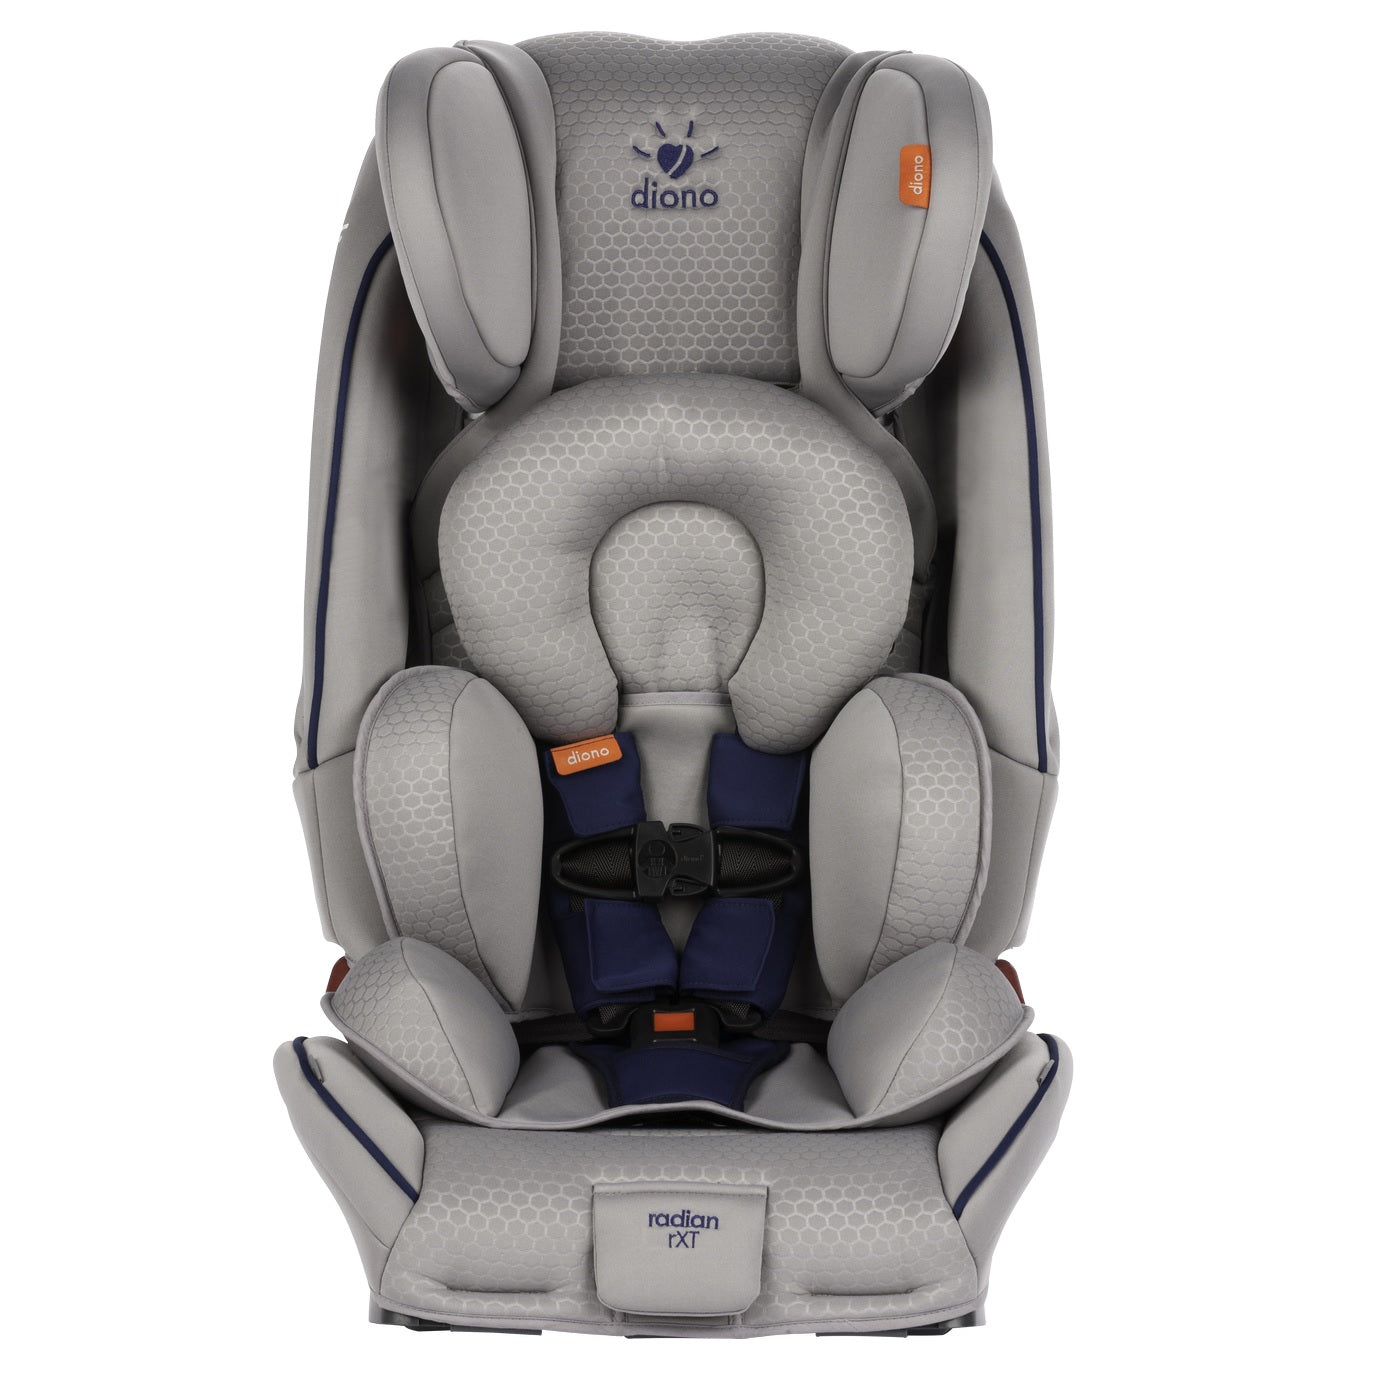 Diono RadianR RXT Just My Color Convertible Booster Car Seat In Silver And Blue